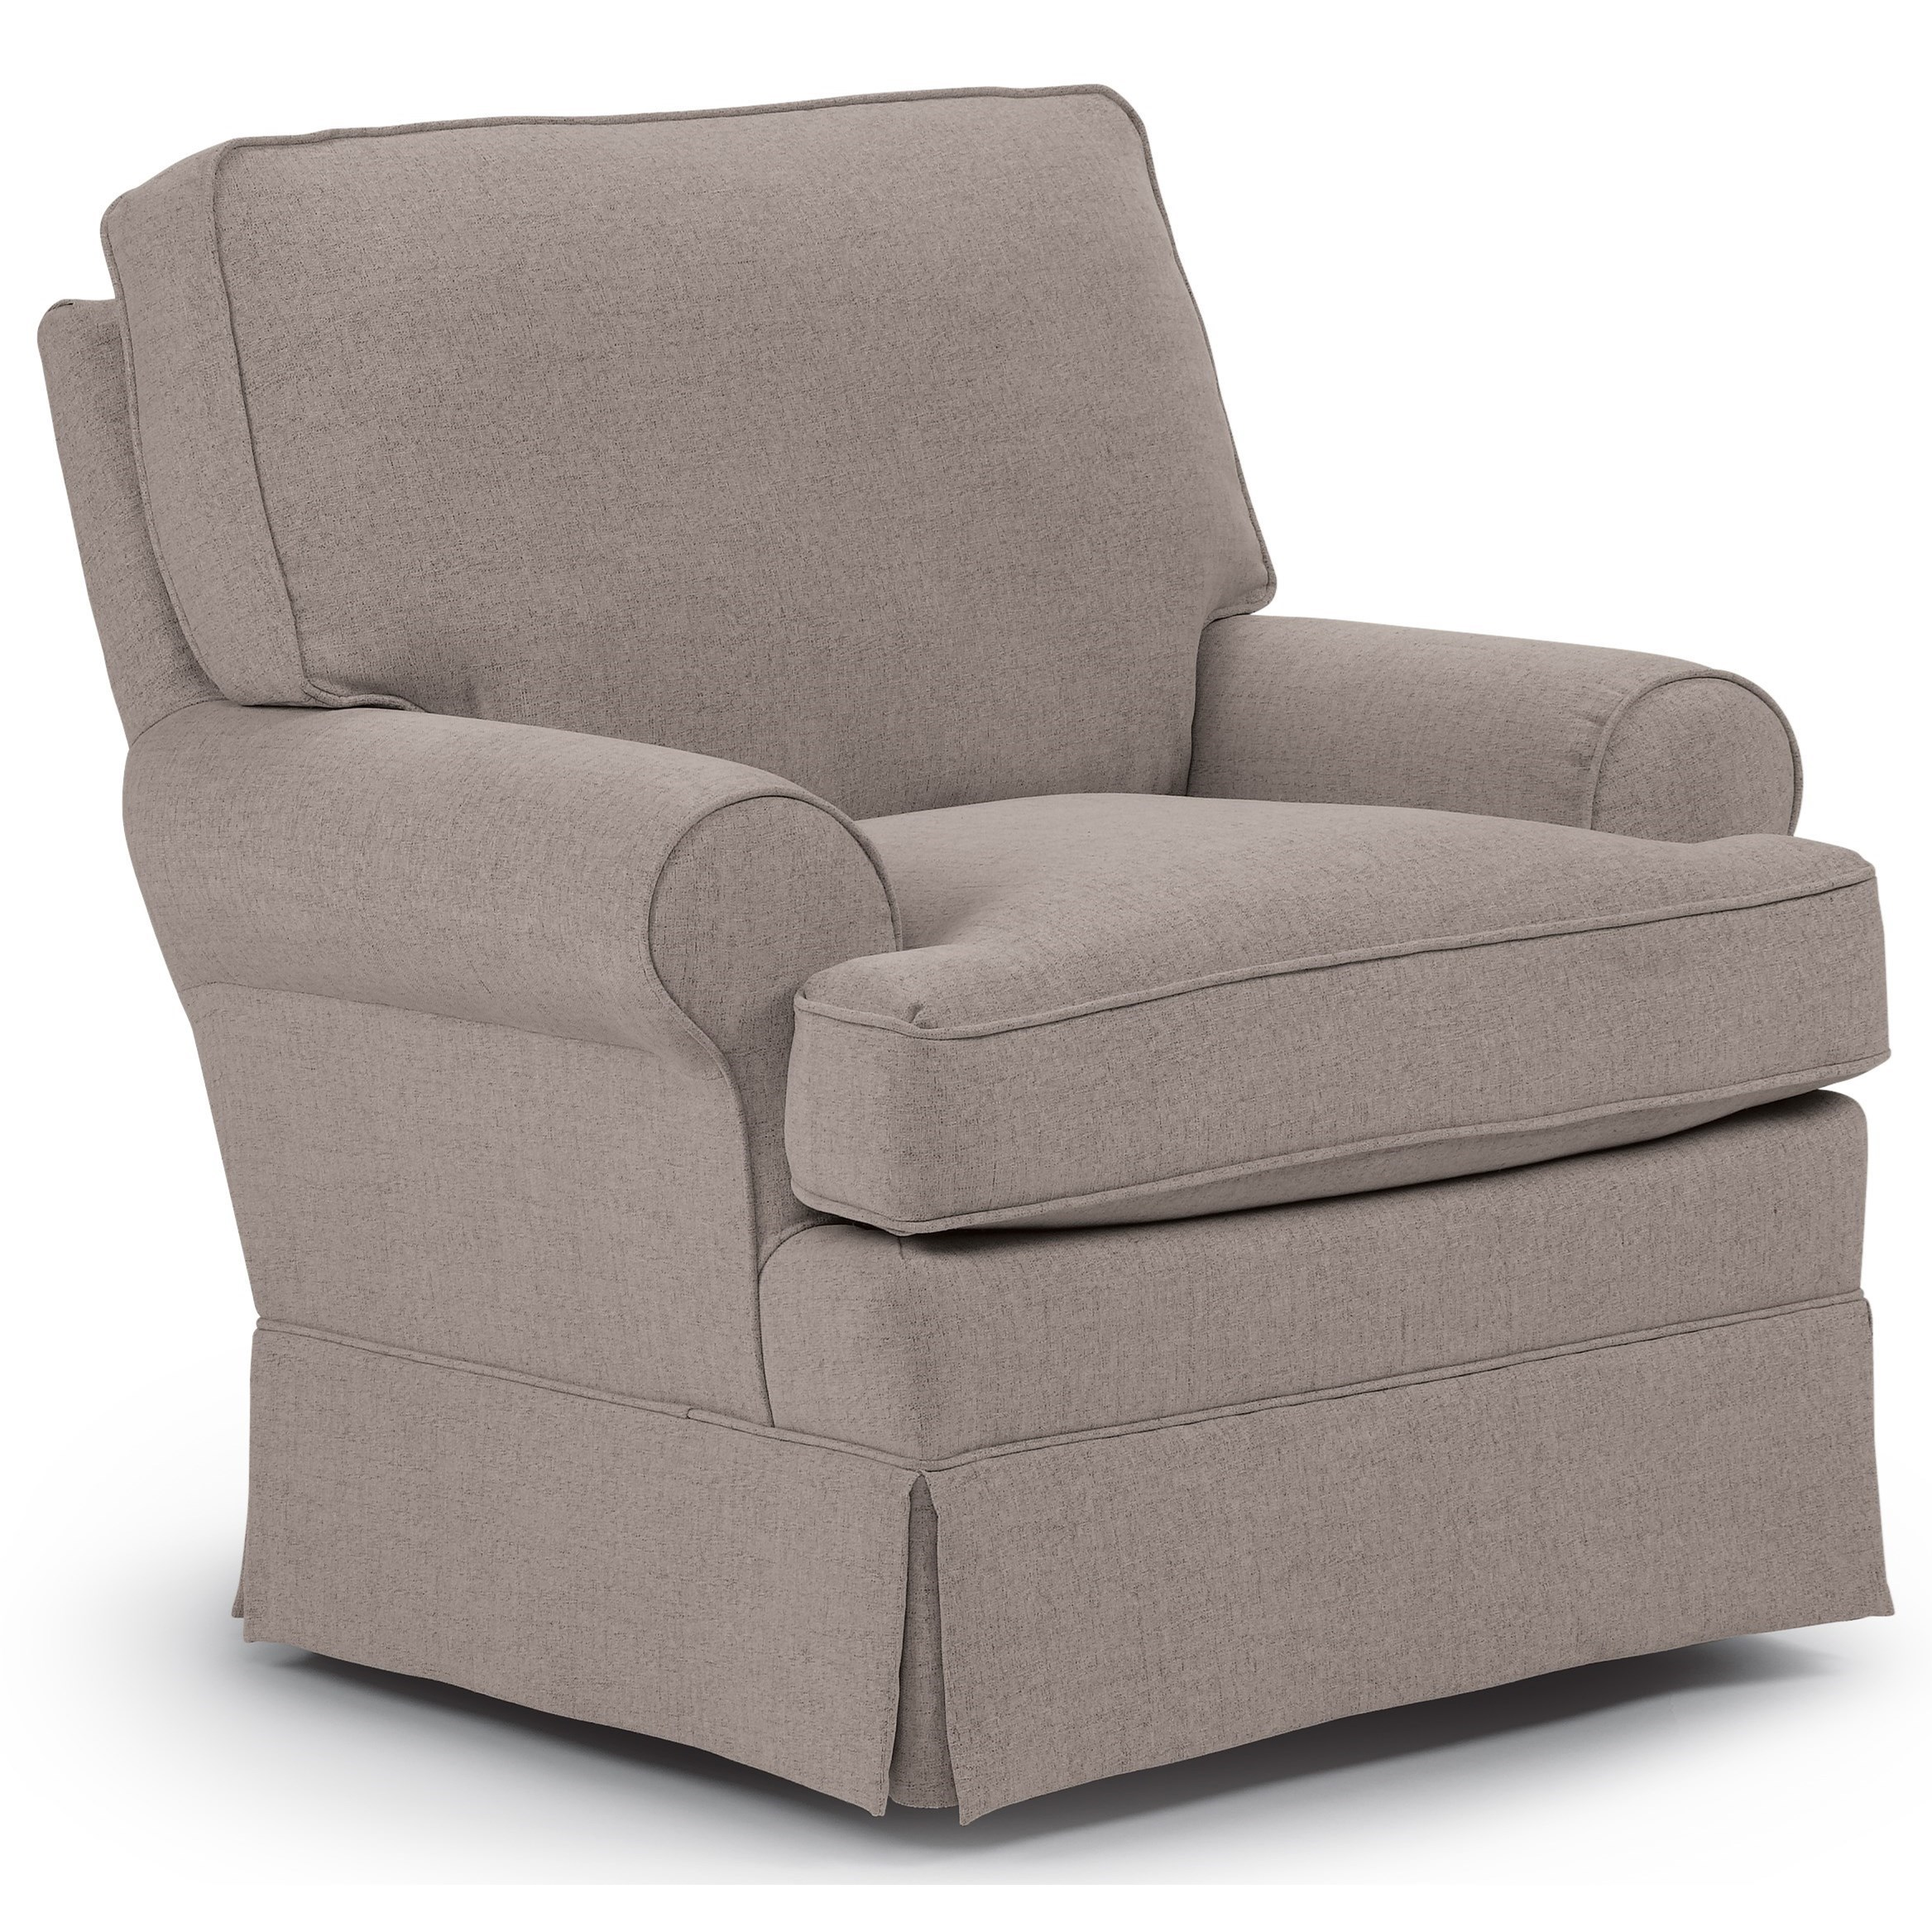 best home furnishings chairs swivel glide quinn swivel glider chair with welt cord trim - Glider Chairs